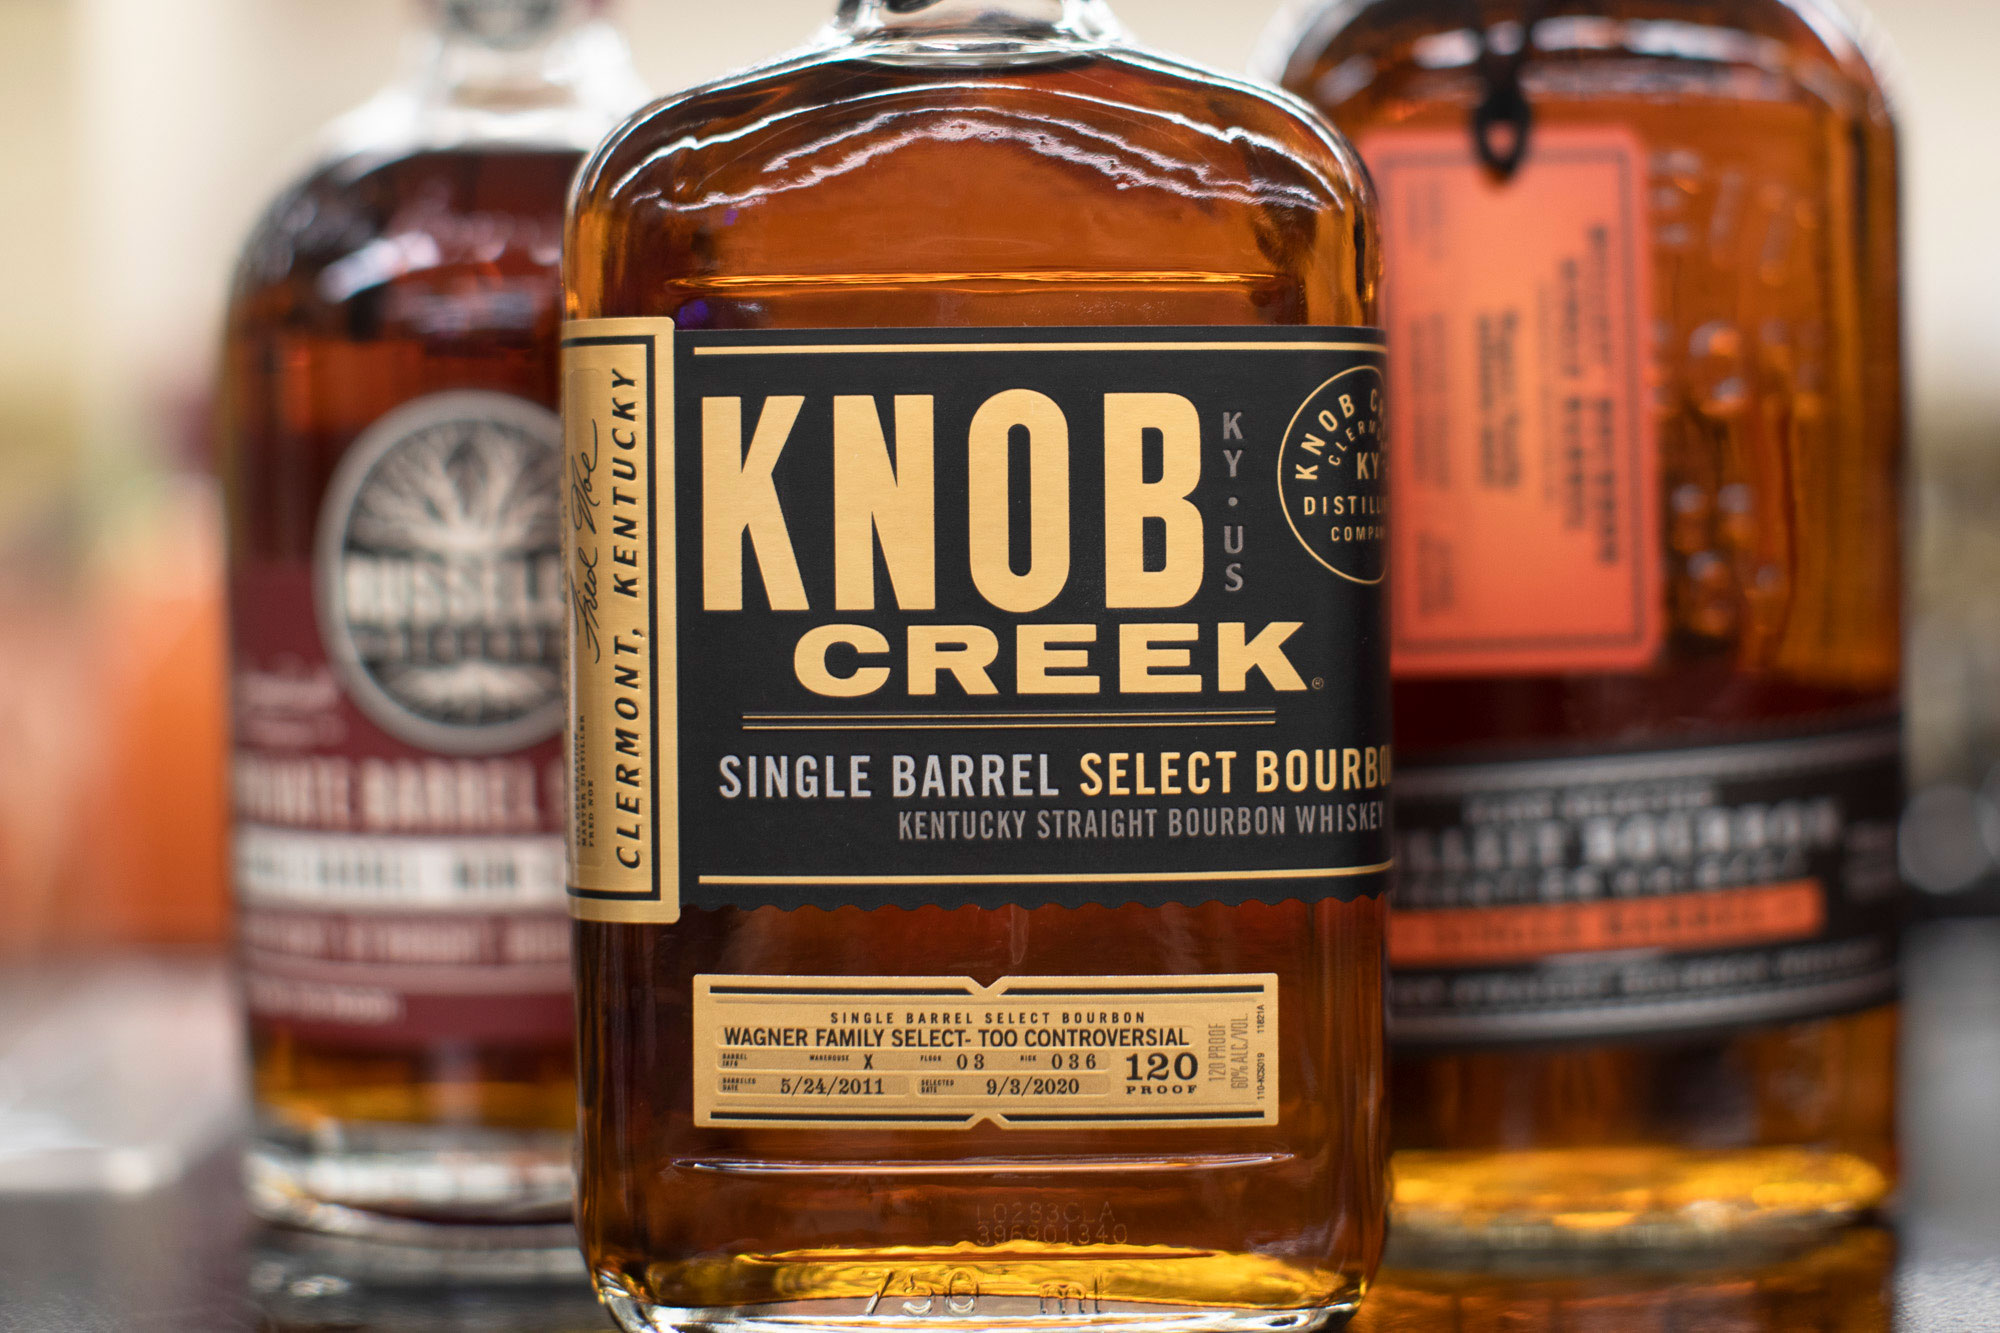 Knob Creek bourbon with Bulleit and Russells Bourbon in background